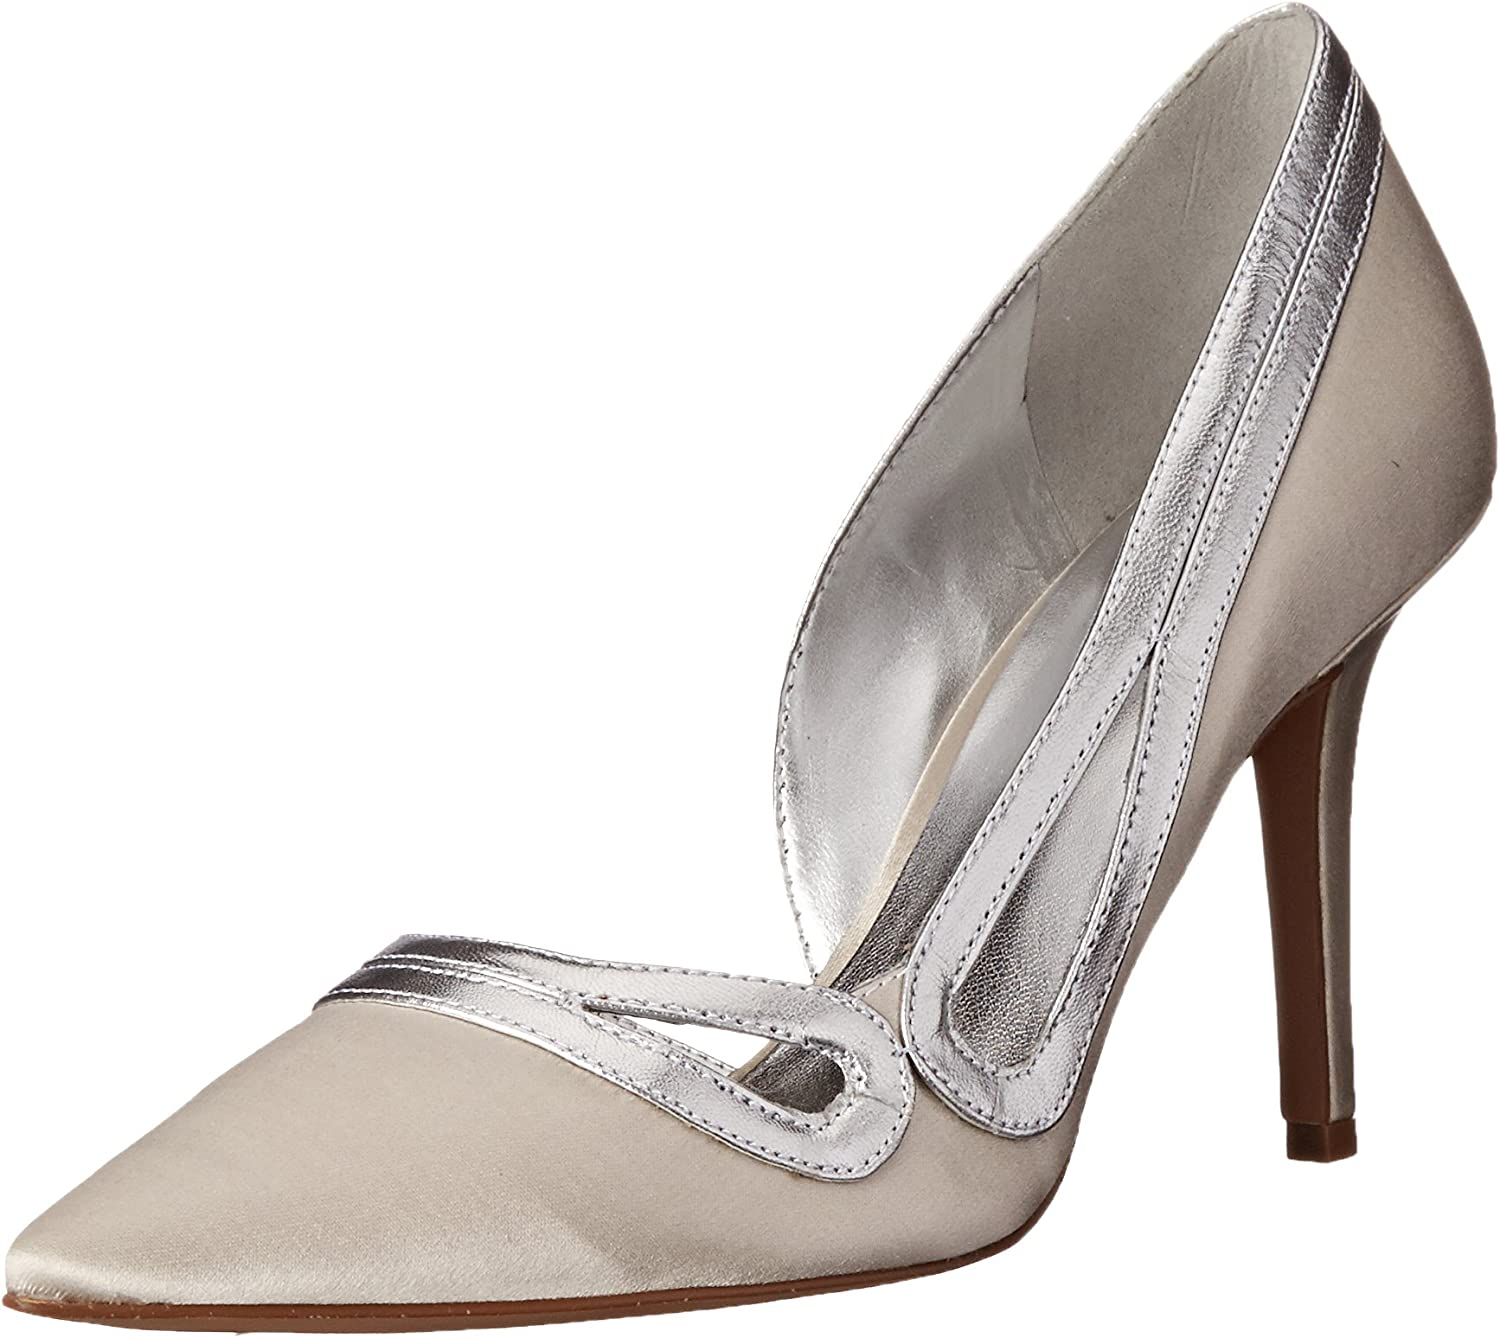 Nine West Women's Jiterbug Satin Dress Pump